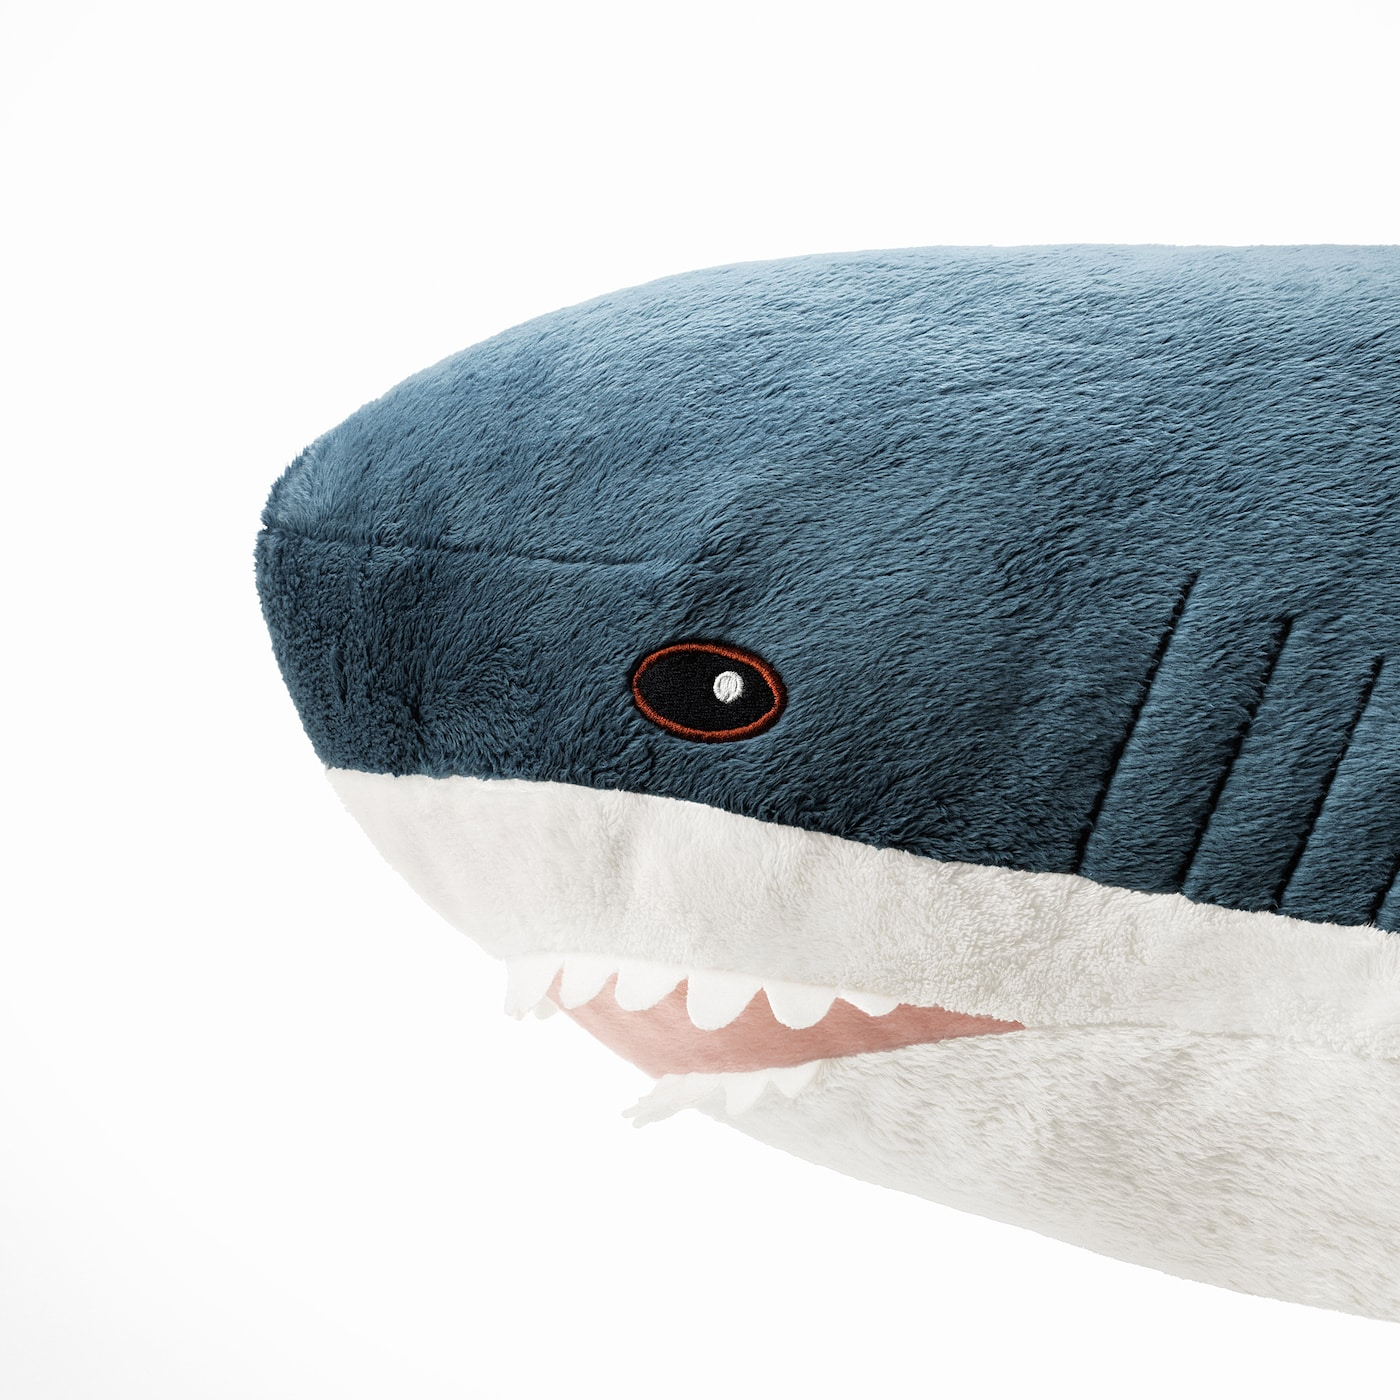 BLÅHAJ soft toy shark 39 ¼ ""